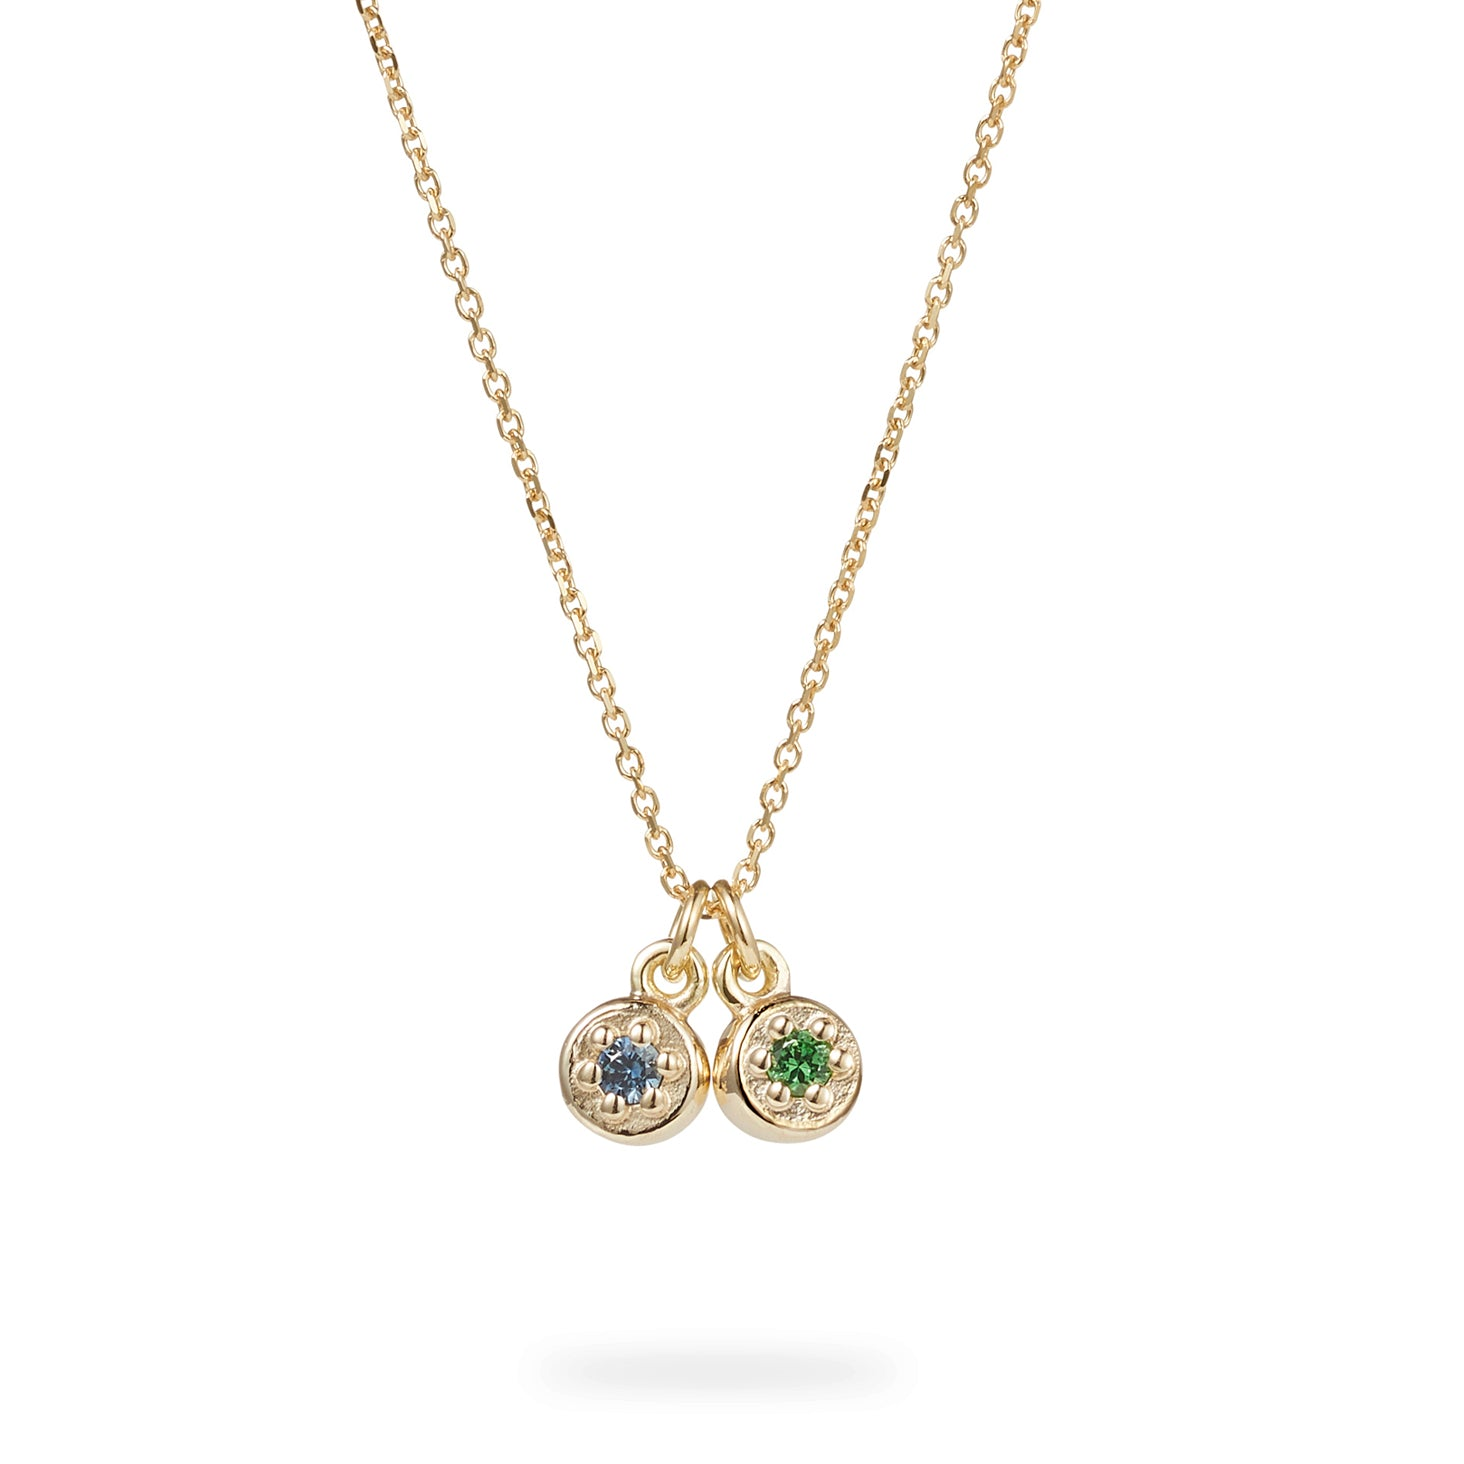 Luke Rose Jewellery gold double poppy rock necklace